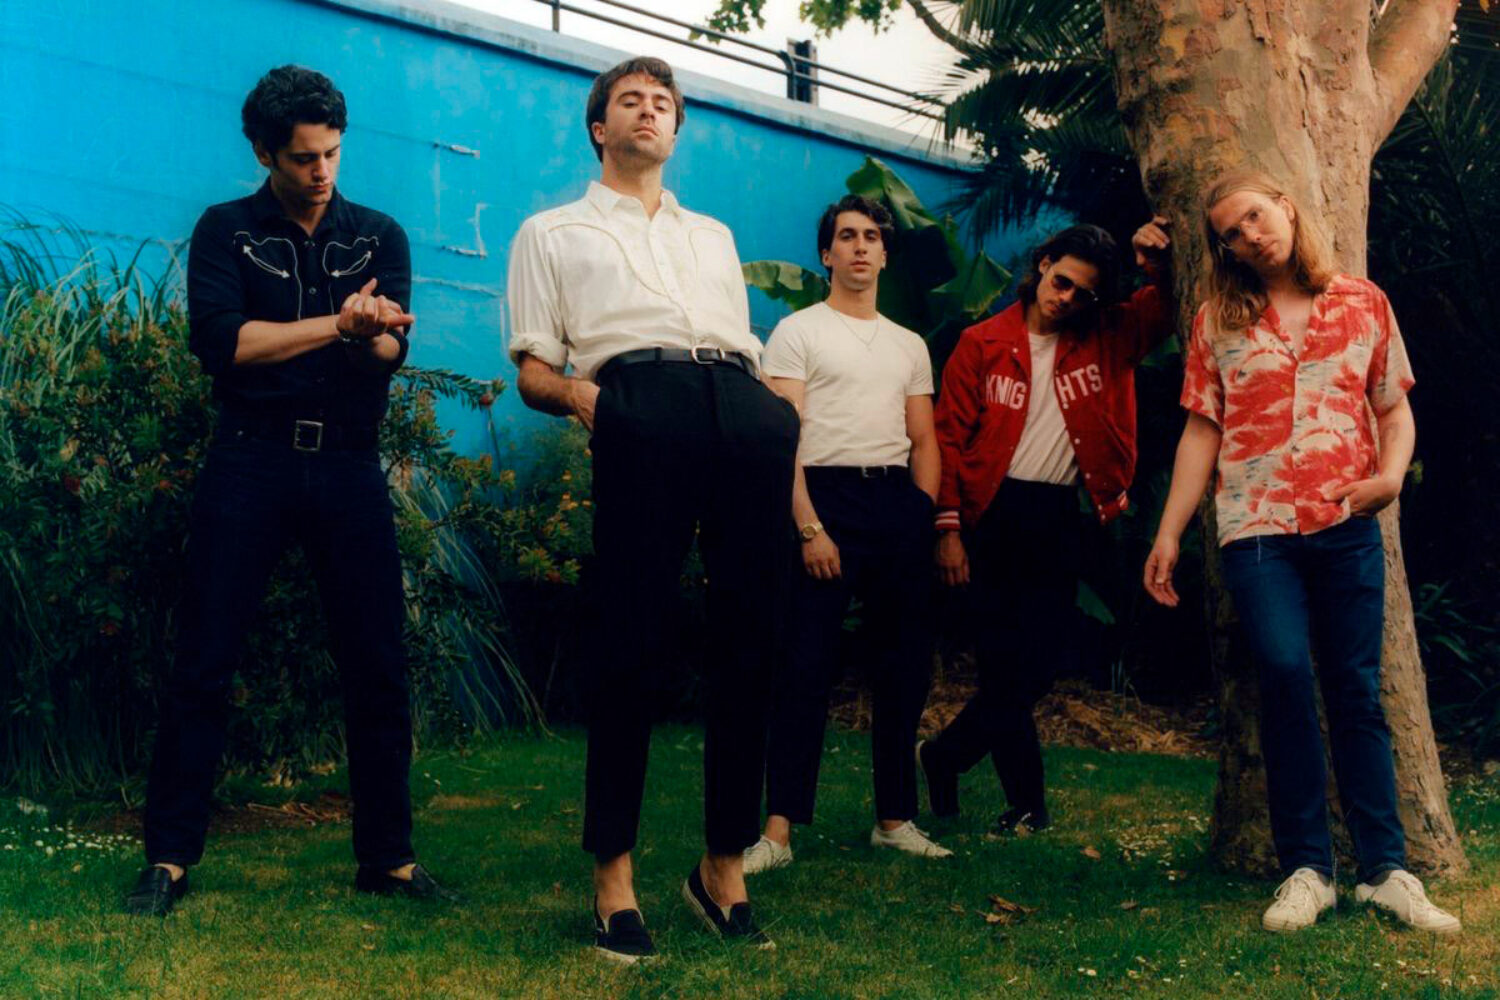 The Vaccines to release cover of Wanda Jackson's 'Funnel Of Love' this week